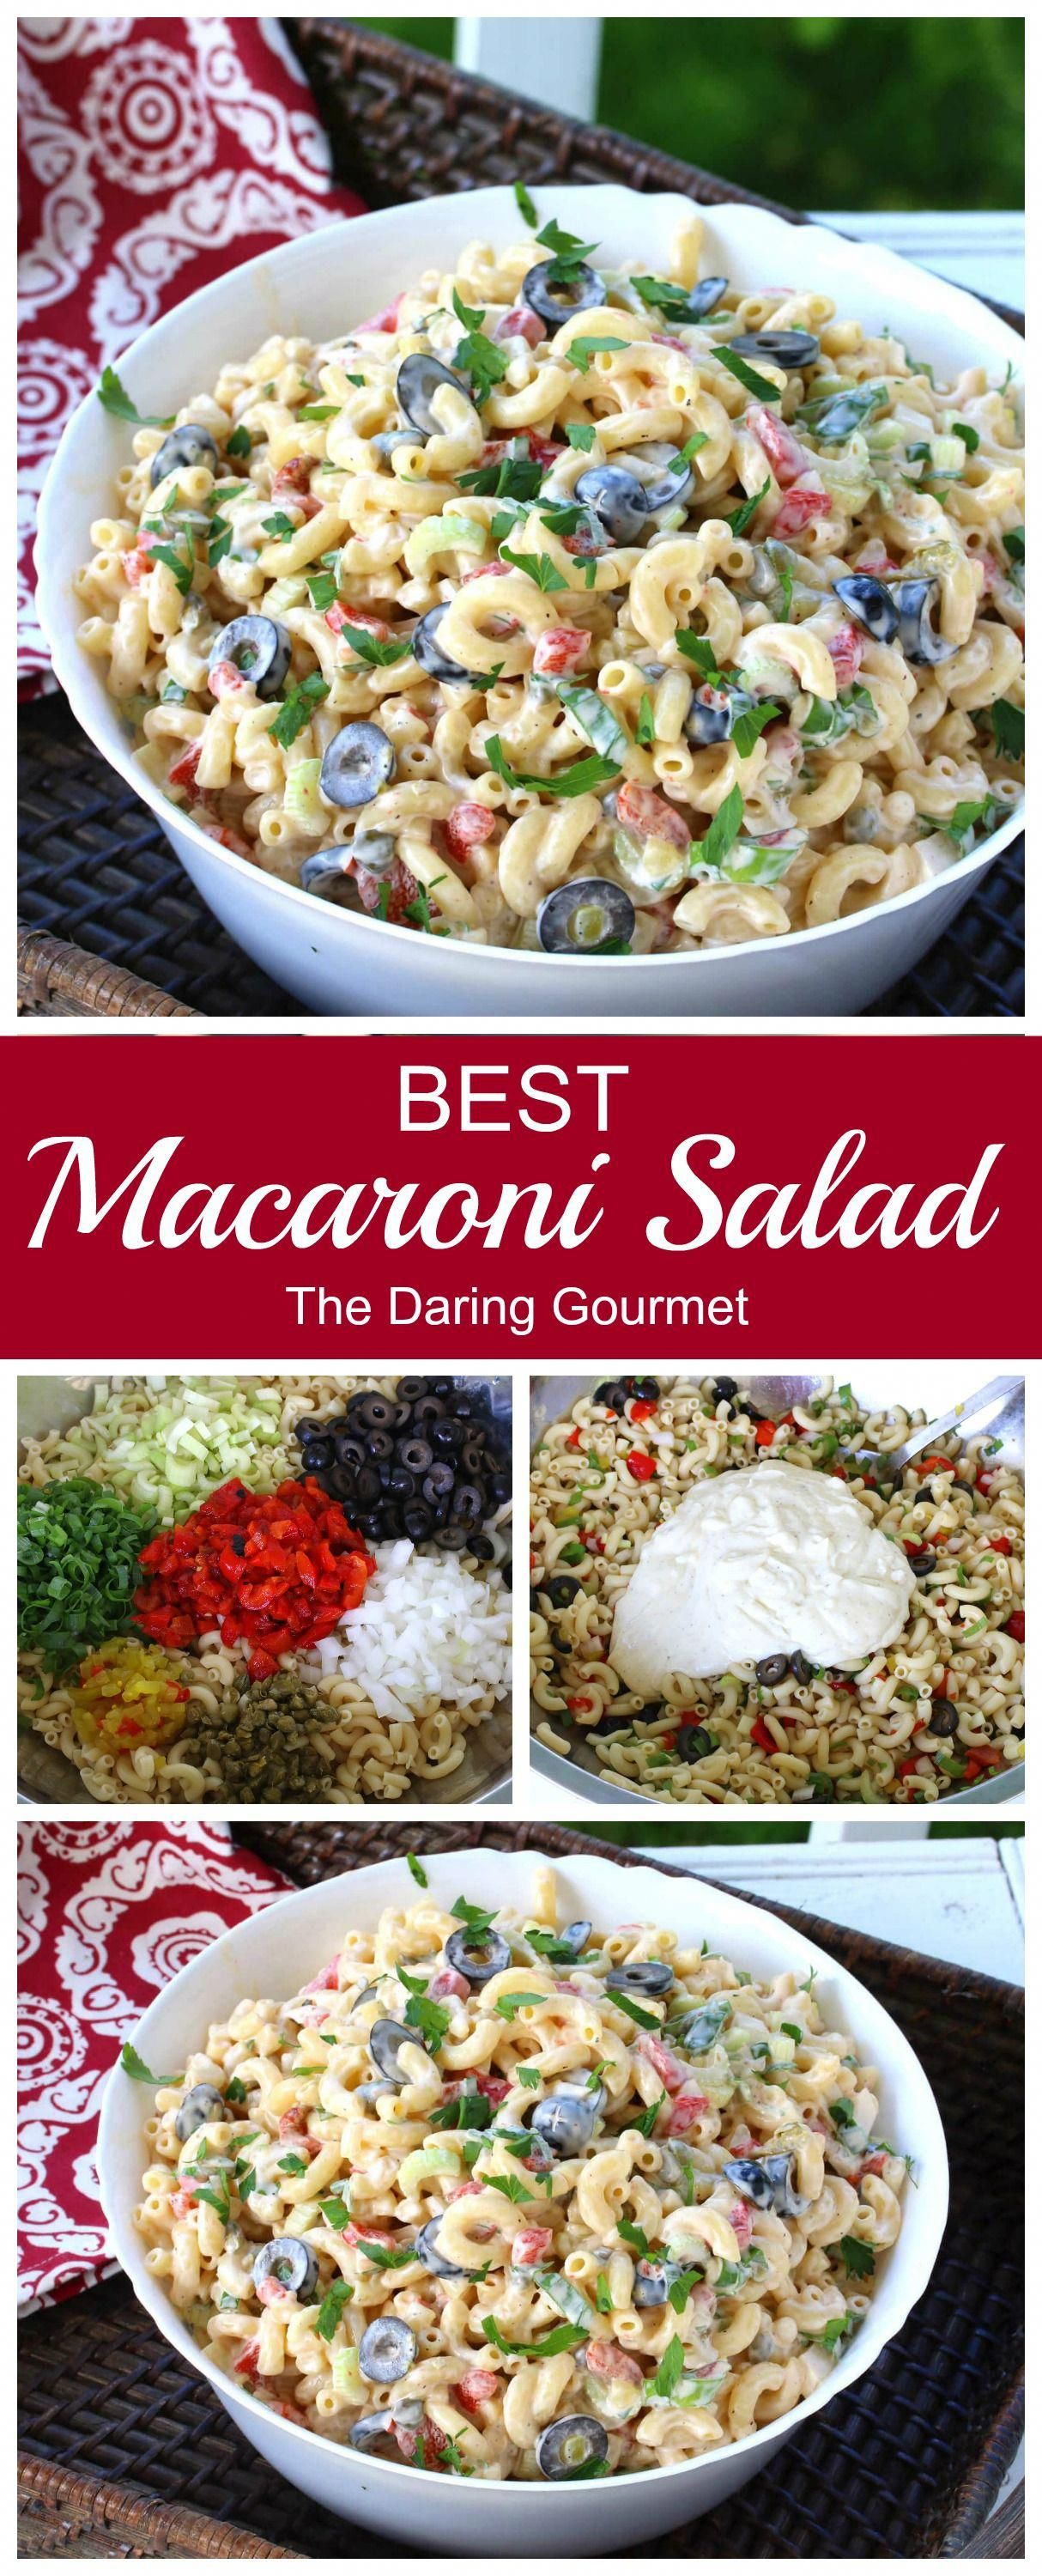 Deliciously creamy, moist, packed with flavor, the right balance of ingredients, the perfect texture, and visually beautiful, this macaroni salad is simply the BEST!